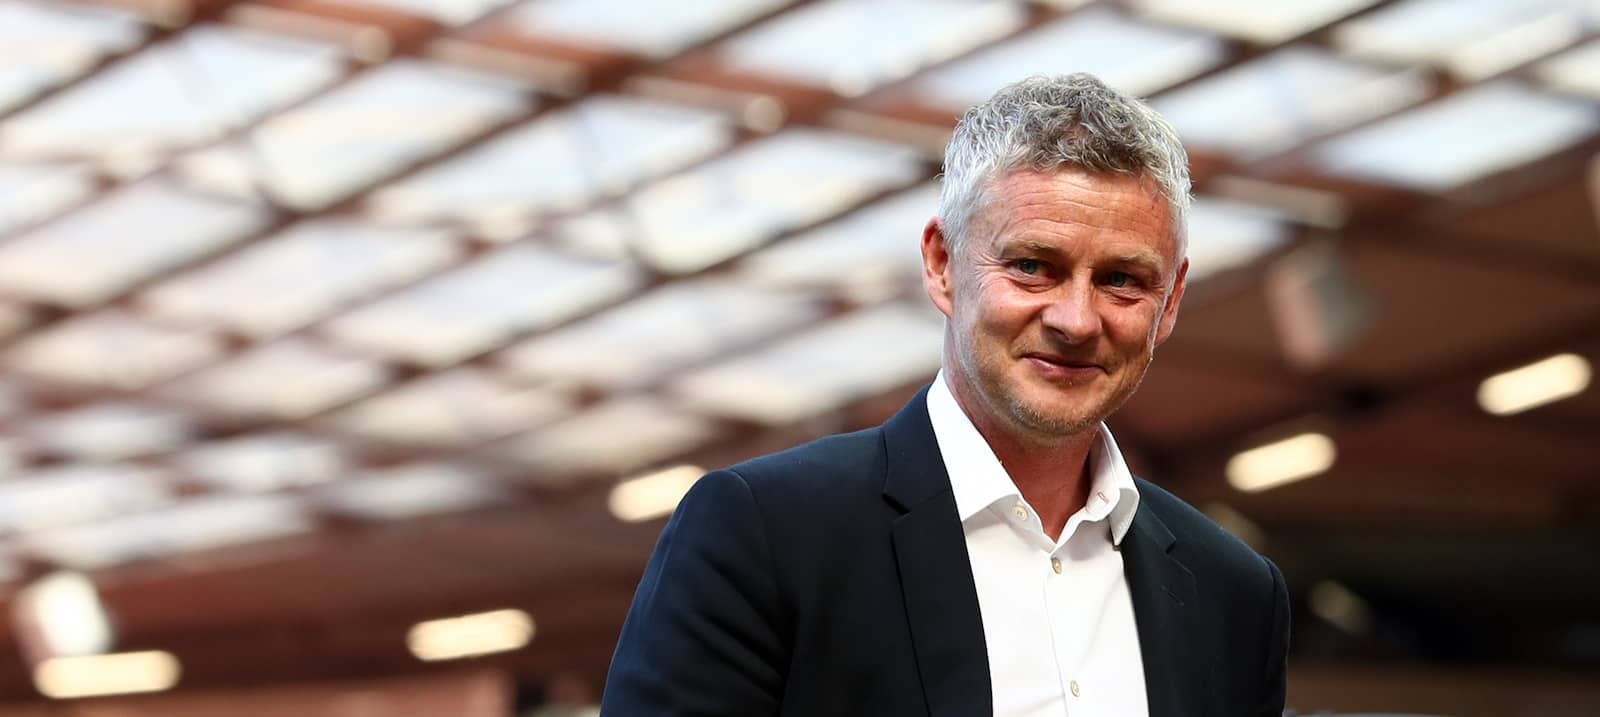 Ole Gunnar Solskjaer confirms summer transfer expectations